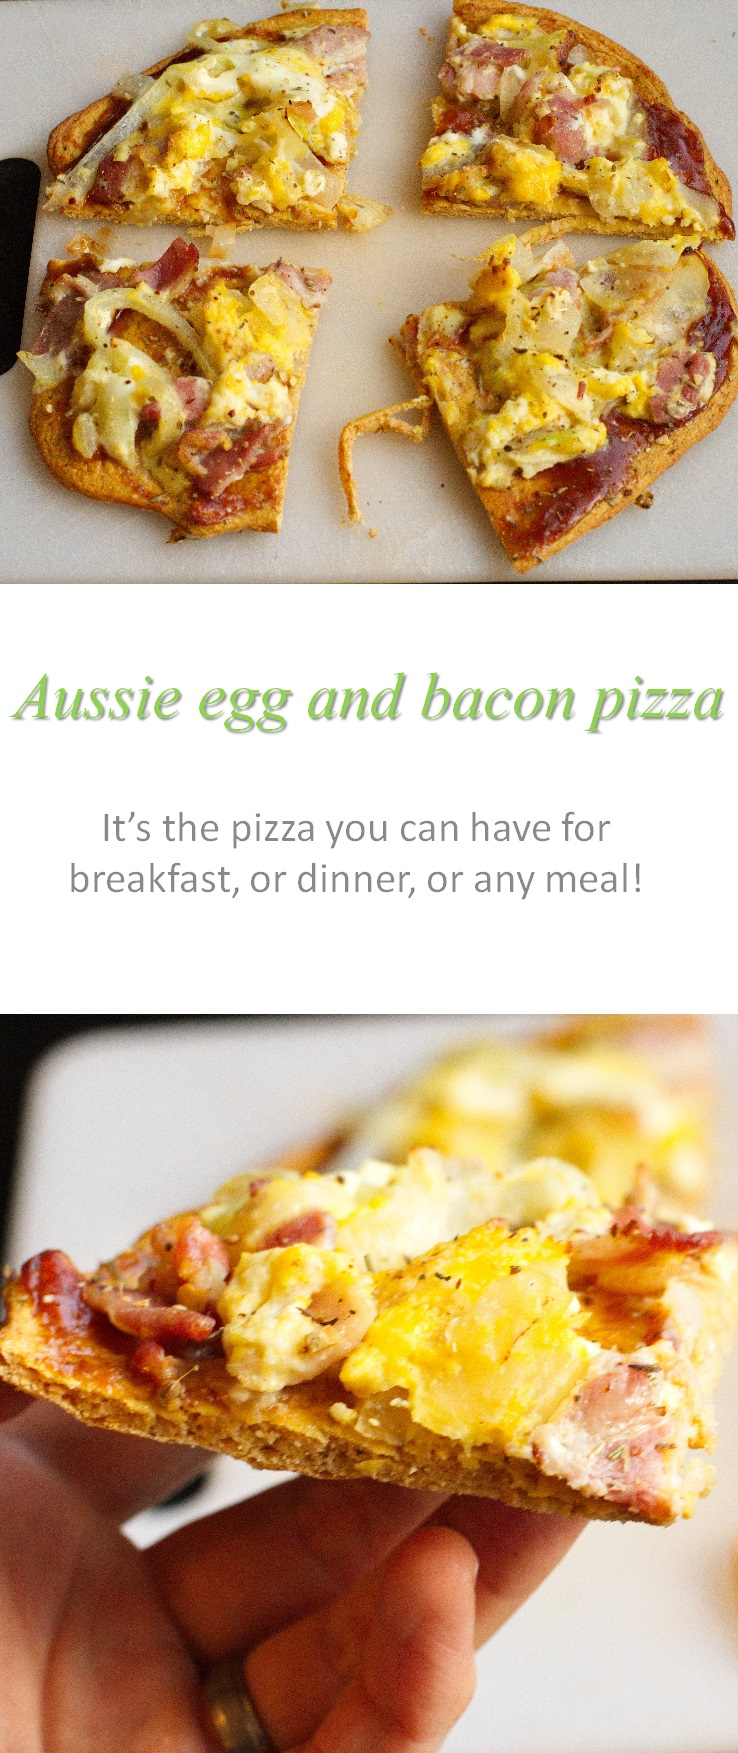 Not sure why it's called an Aussie egg and bacon pizza, but this re-creation of a family favorite hits the spot! #pizza